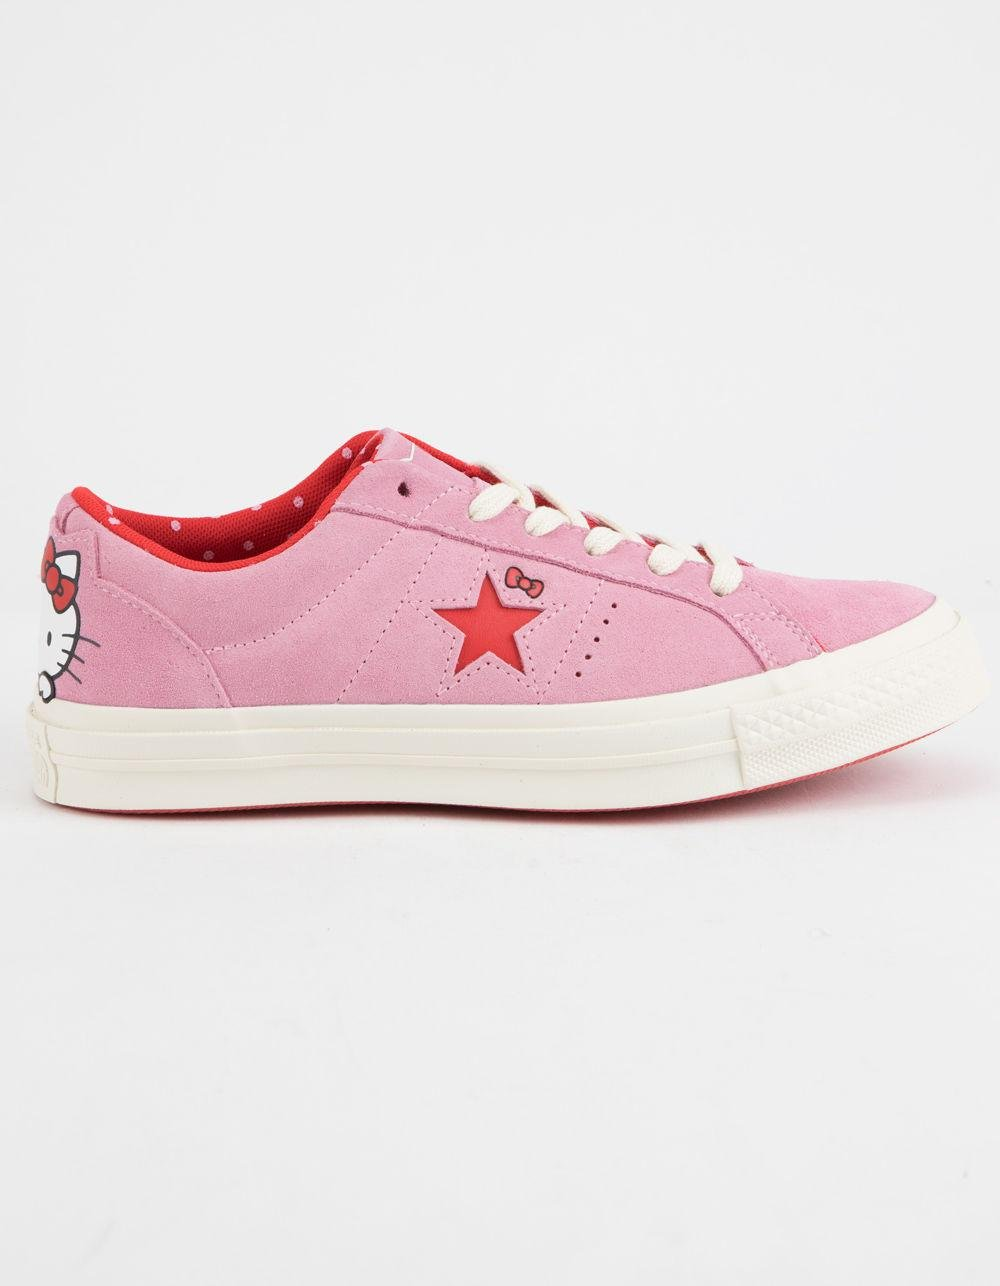 cad29606ecc Lyst - Converse X Hello Kitty One Star Prism Pink   Firey Red Womens ...